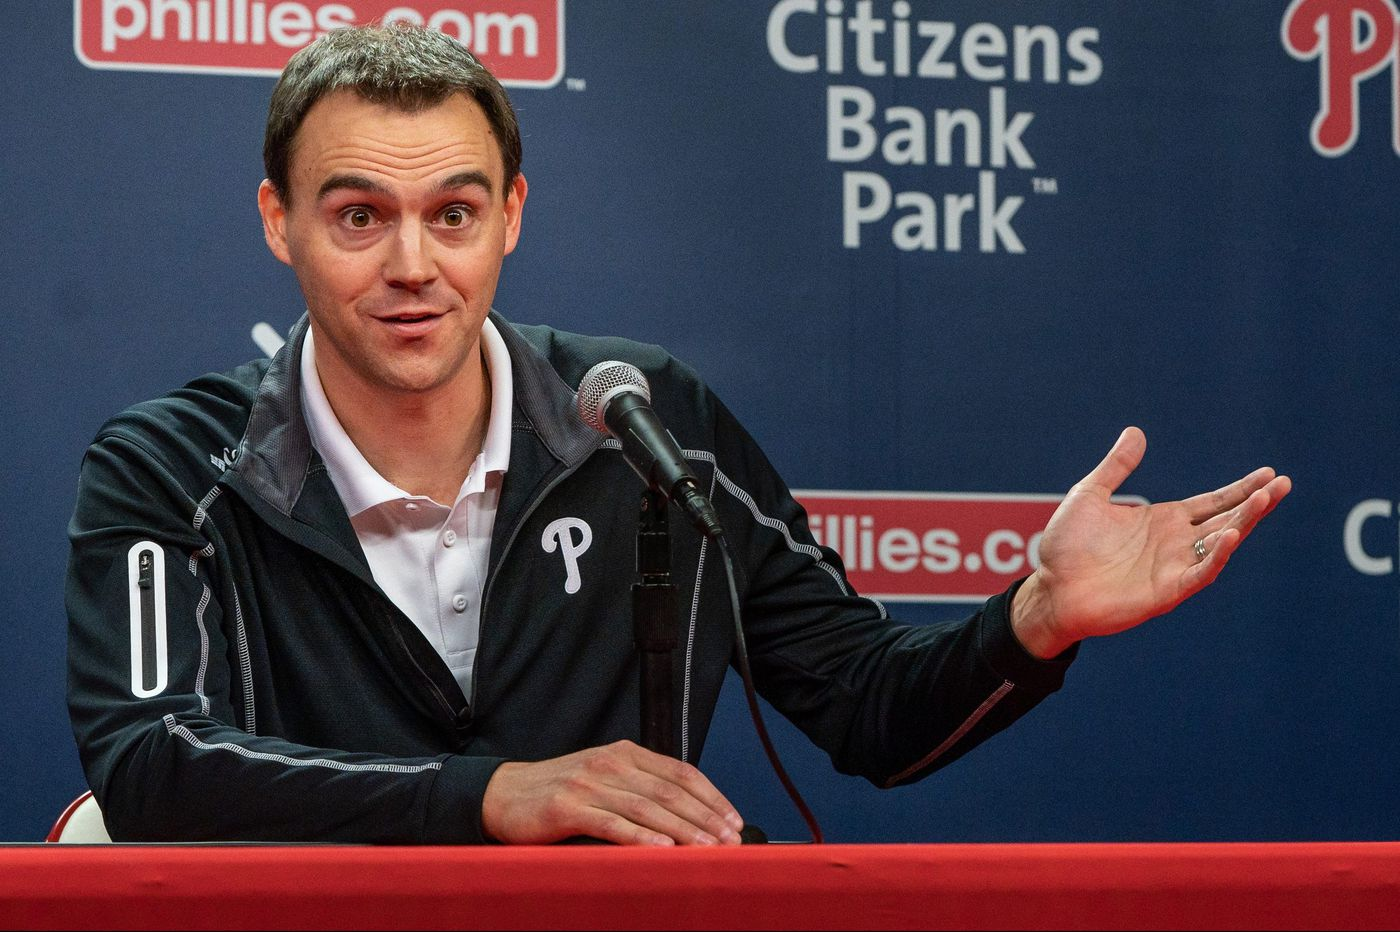 After failing to deal for a top starter at MLB trade deadline, Phillies put focus on offseason for improving their rotation